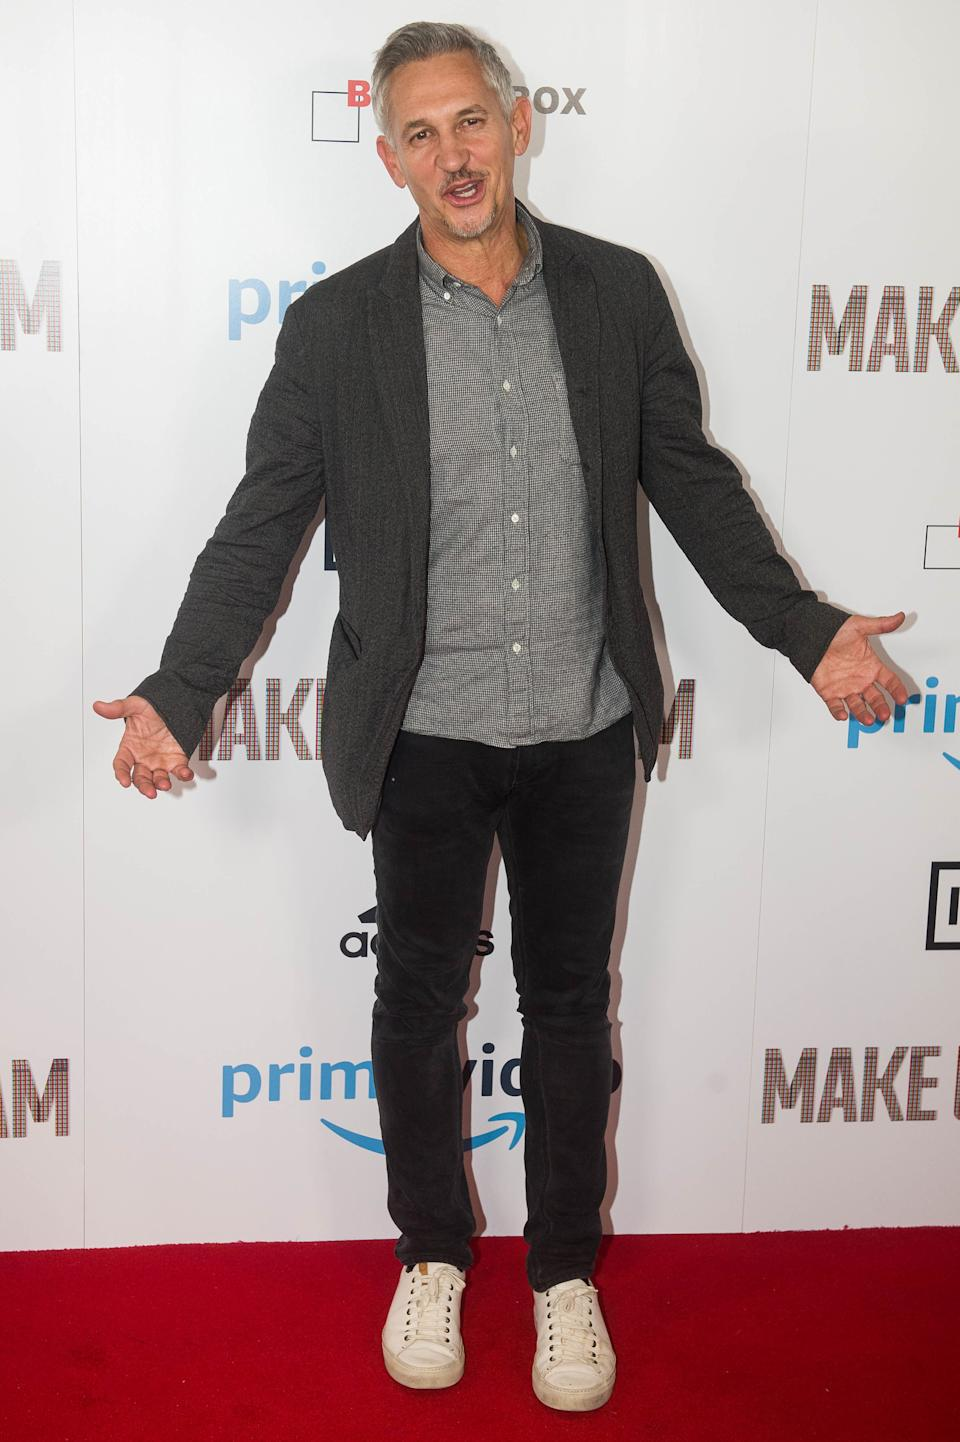 Gary Lineker at the world premiere for Make Us Dream, a documentary about former footballer Steven Gerrard, at the Curzon Soho in London.